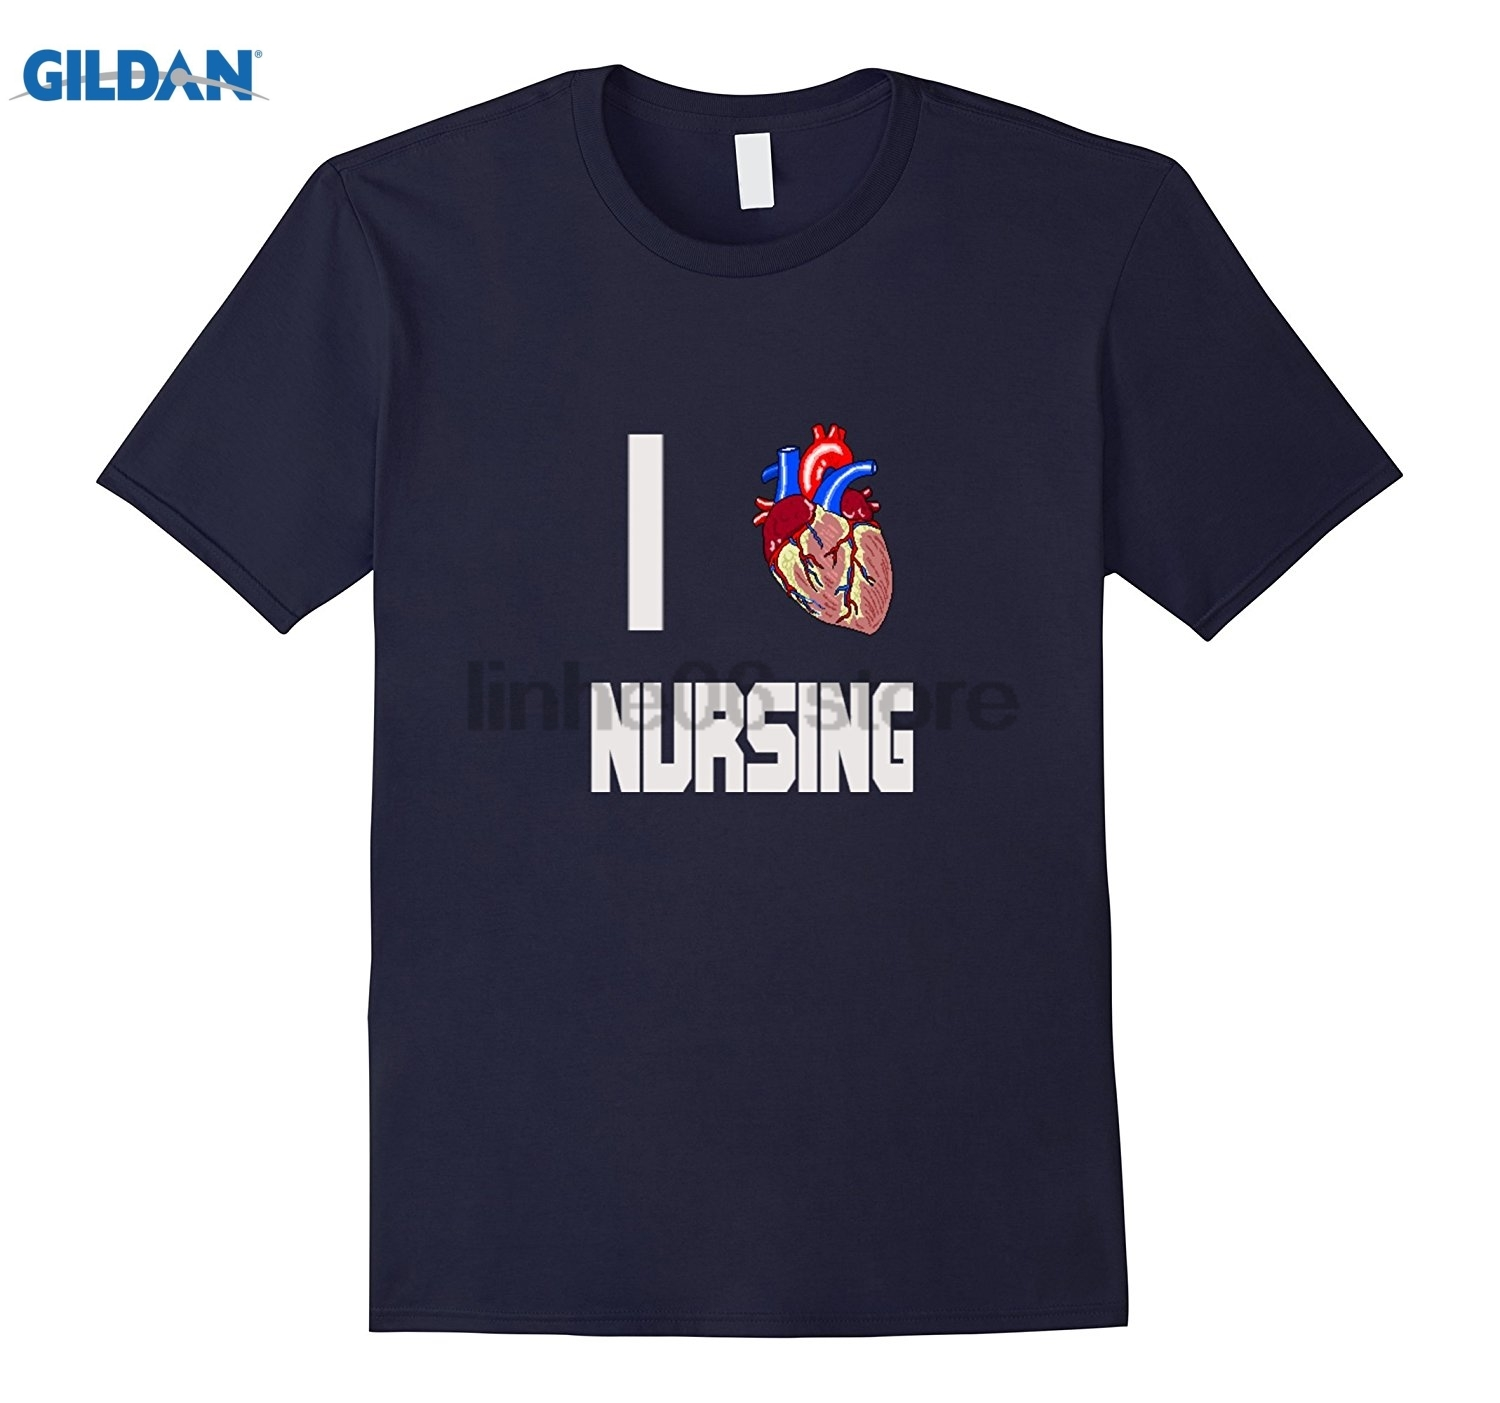 GILDAN I LOVE NURSING MEDICAL HUMOR HUMAN HEART T-SHIRT Asian size T-shirt Dress female T-shirt